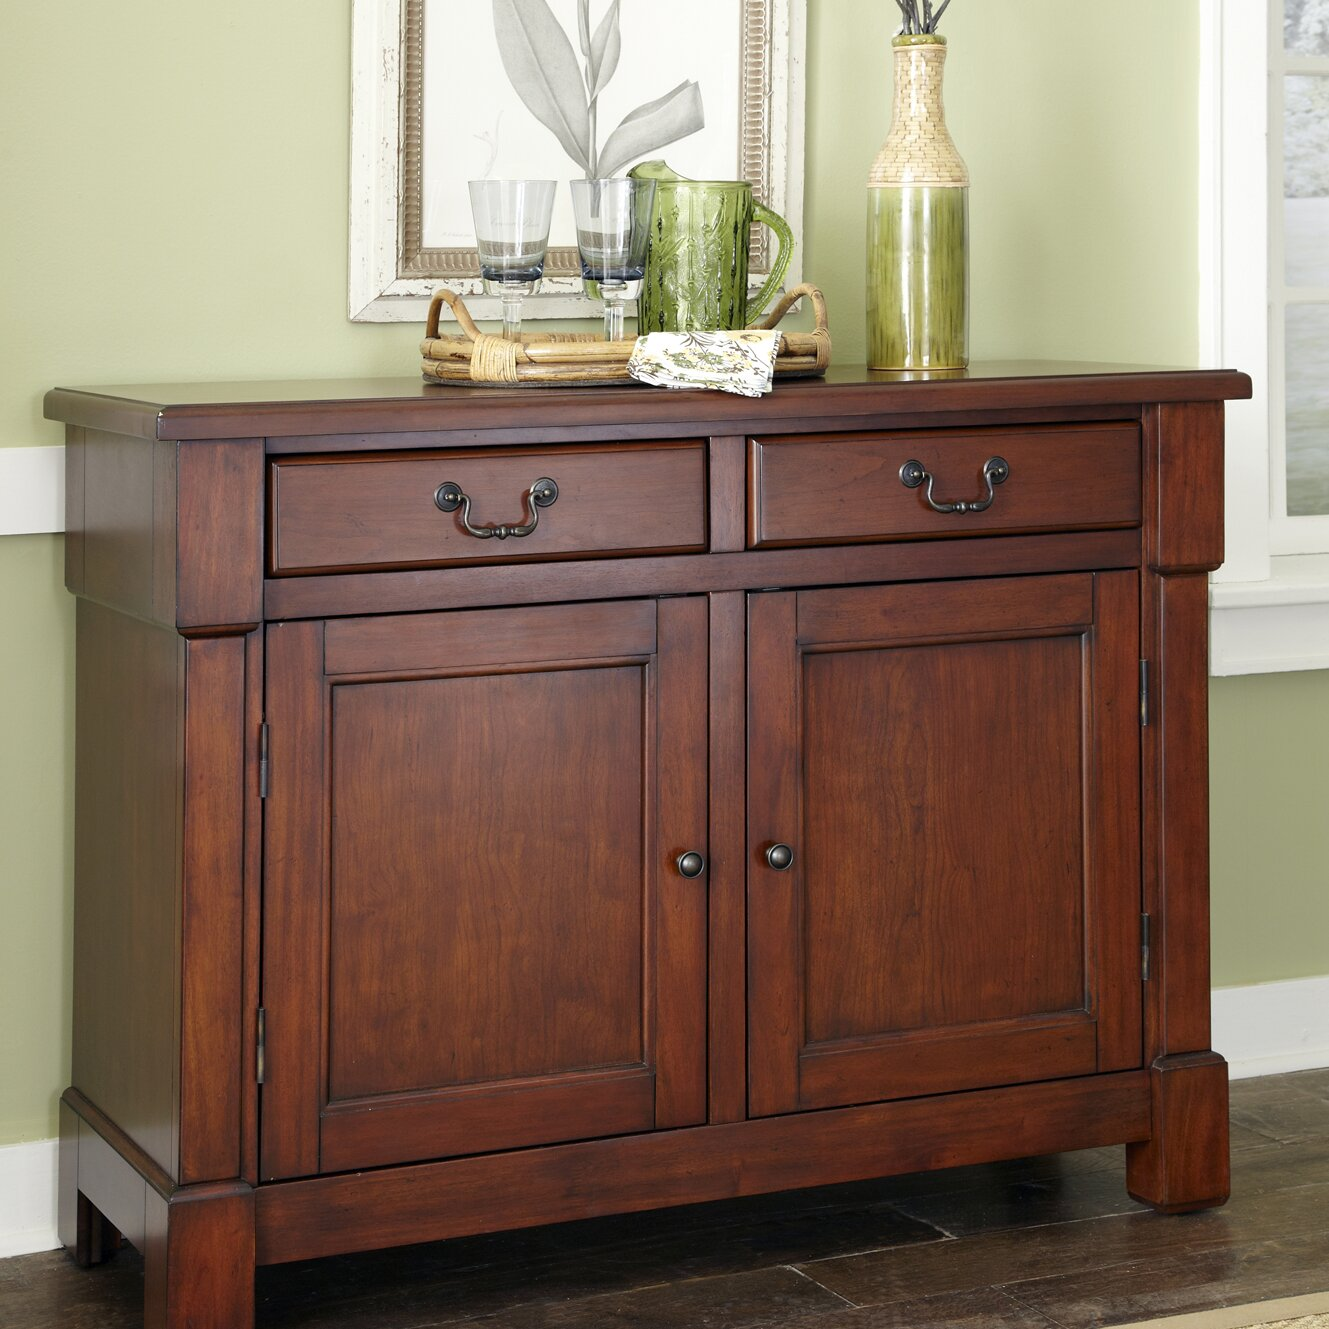 Dining Room Buffet: Darby Home Co Cargile Buffet & Reviews